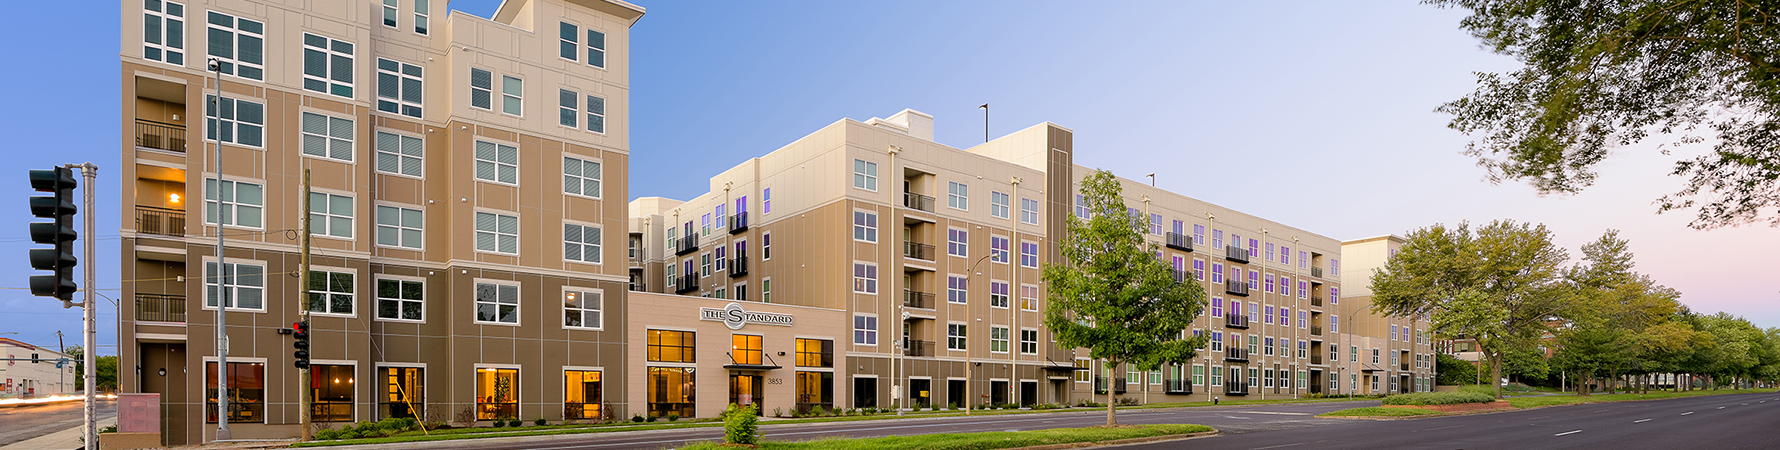 The Standard St. Louis reviews | Apartments at 3853 Forest Park Ave - St. Louis MO